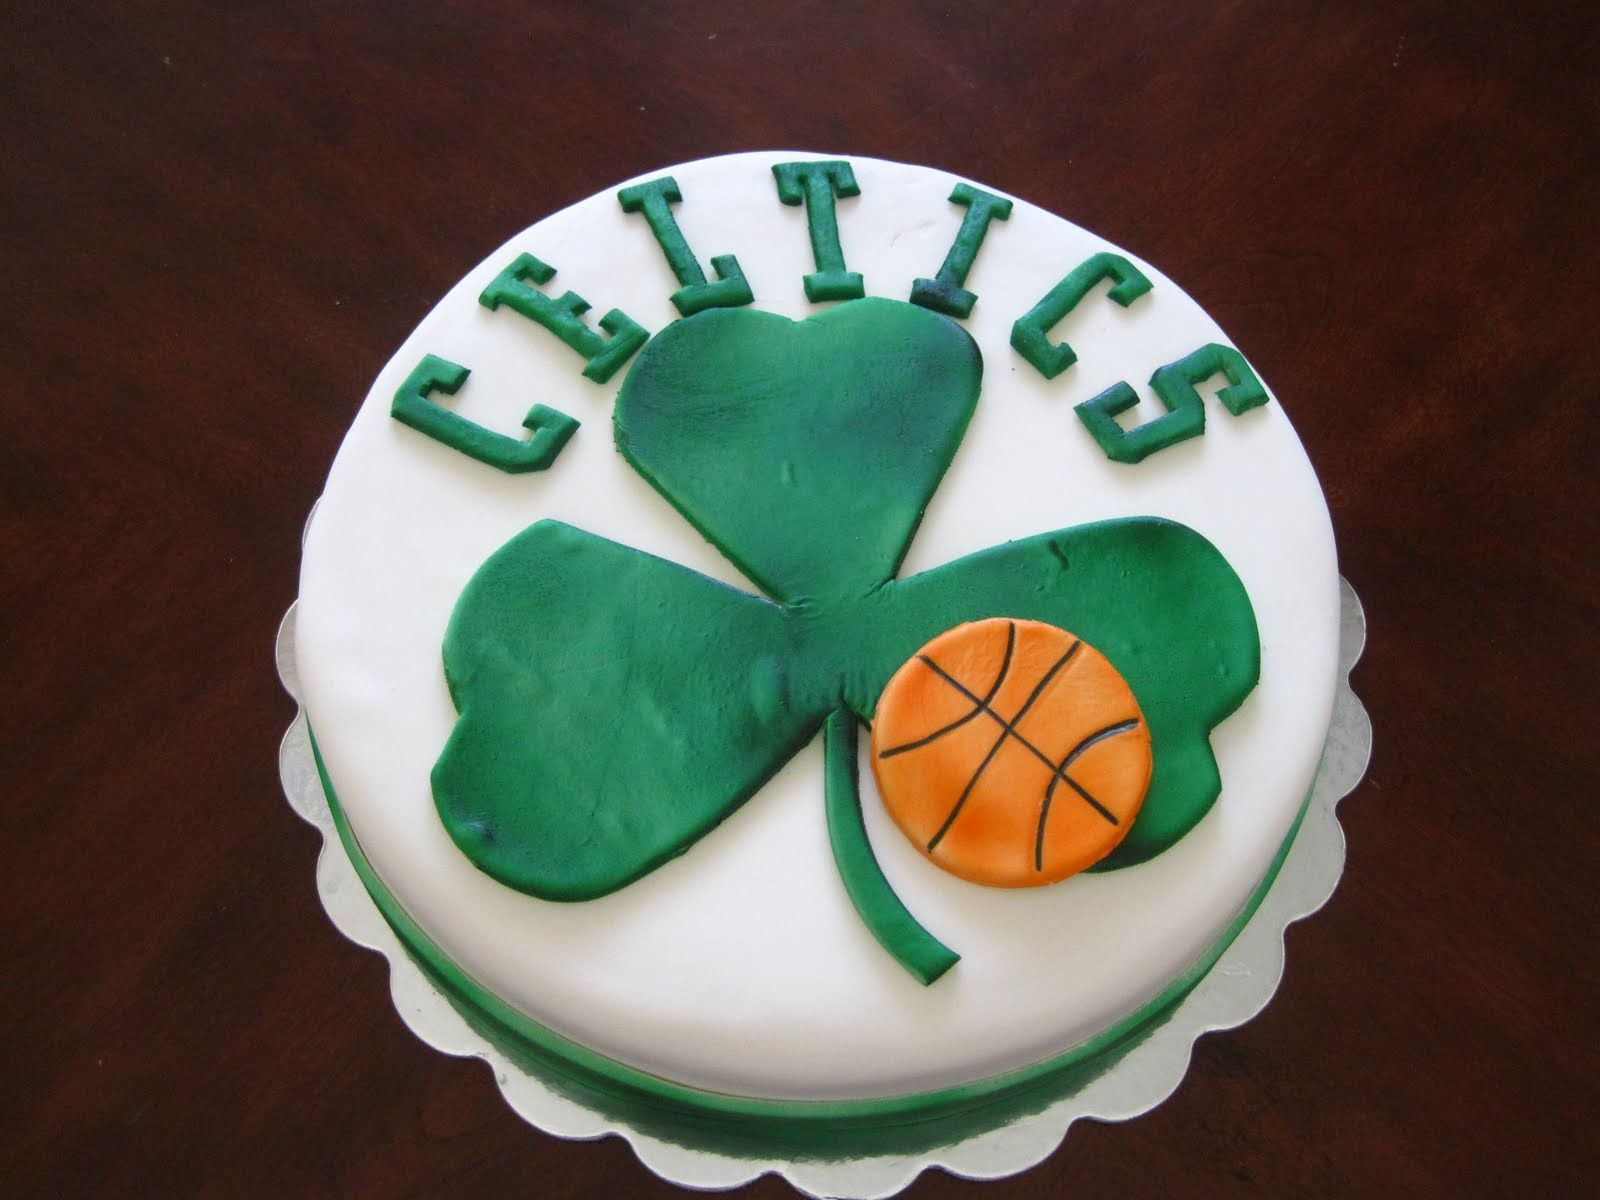 Surprising Celtics Cake With Images Basketball Cake Boston Cream Cake Cake Personalised Birthday Cards Paralily Jamesorg